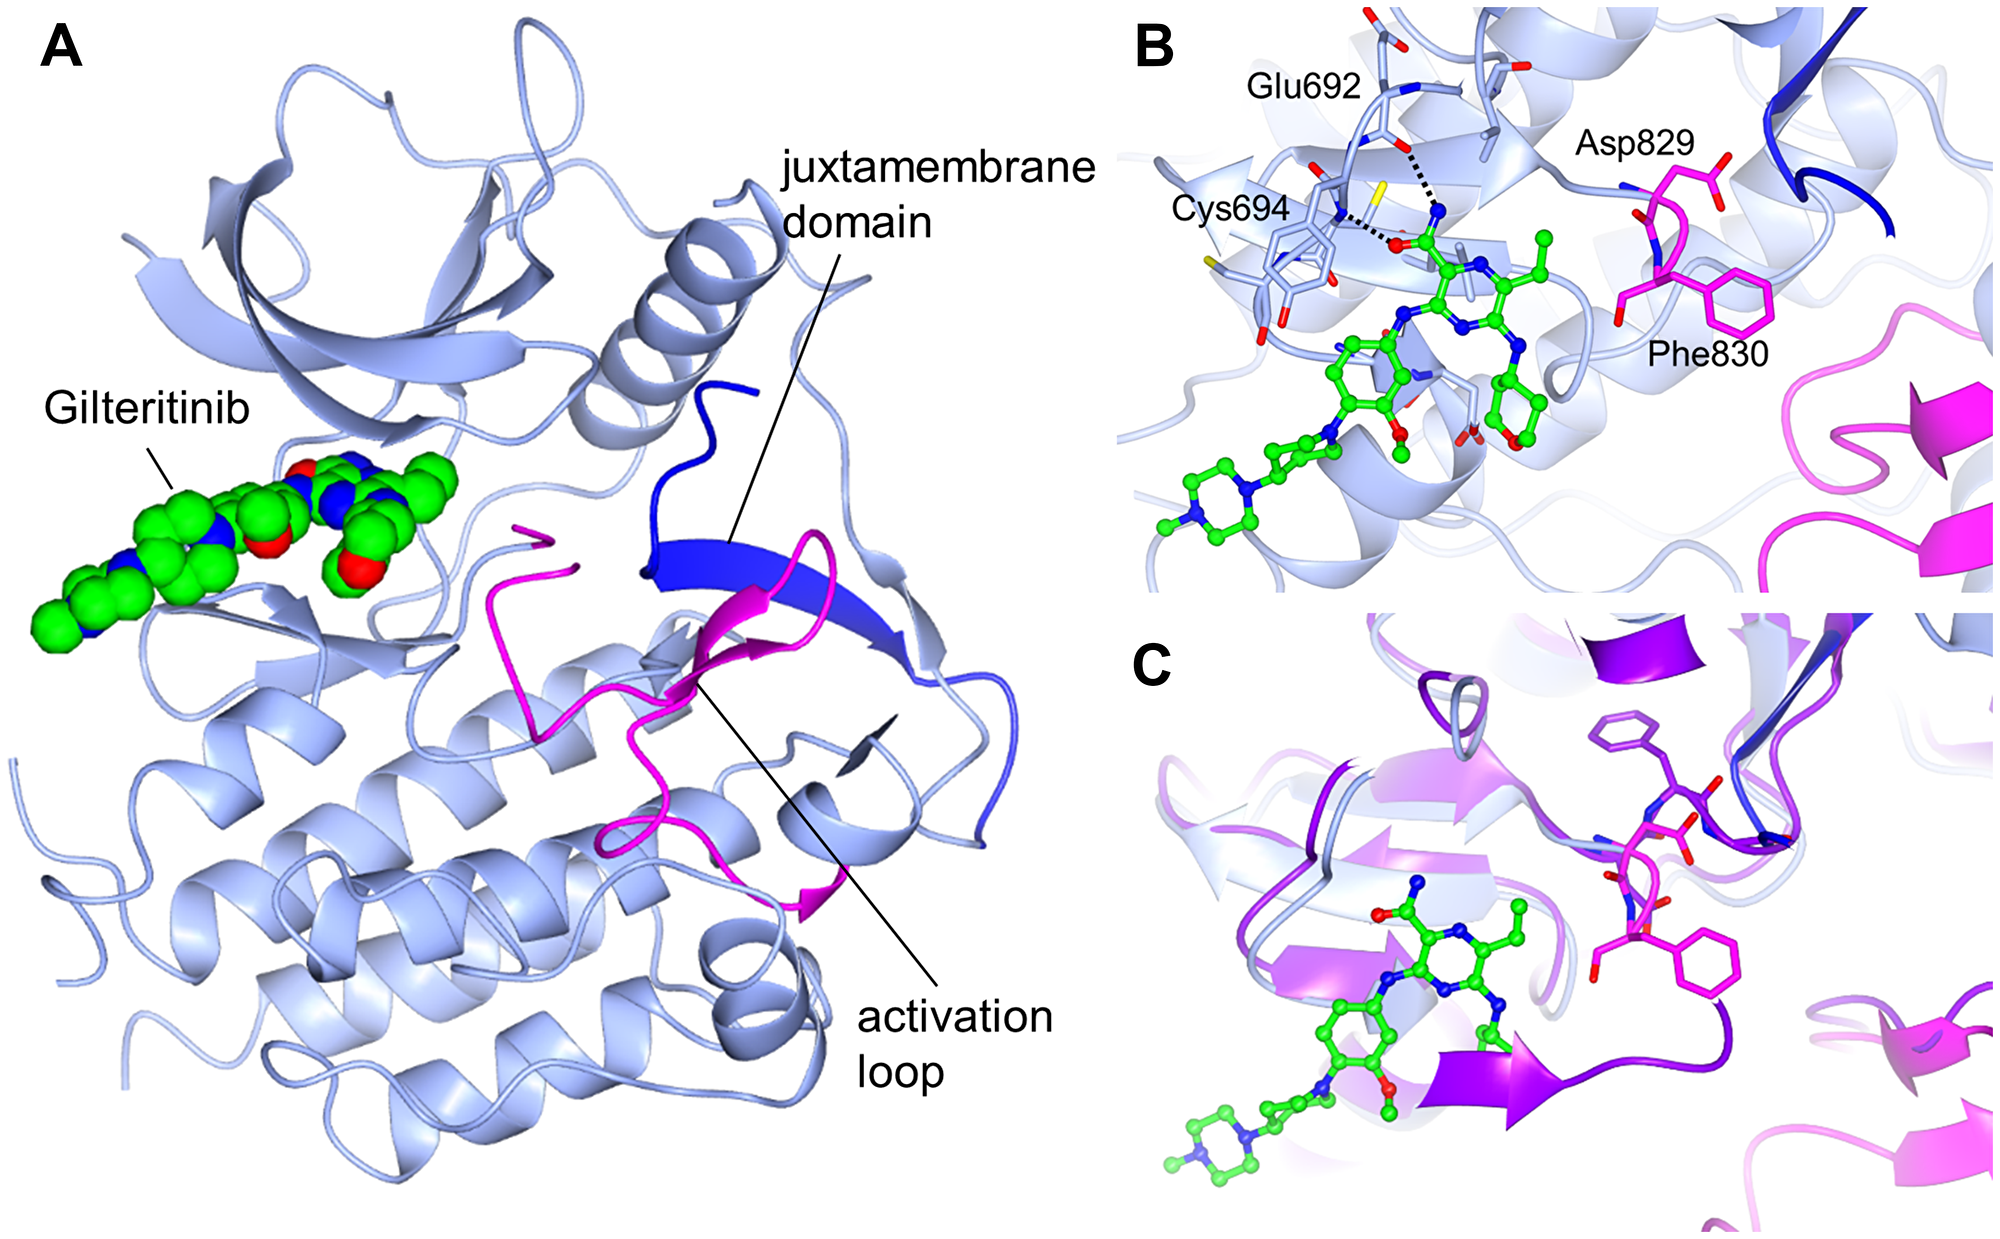 Crystal structure of FLT3 bound to gilteritinib.